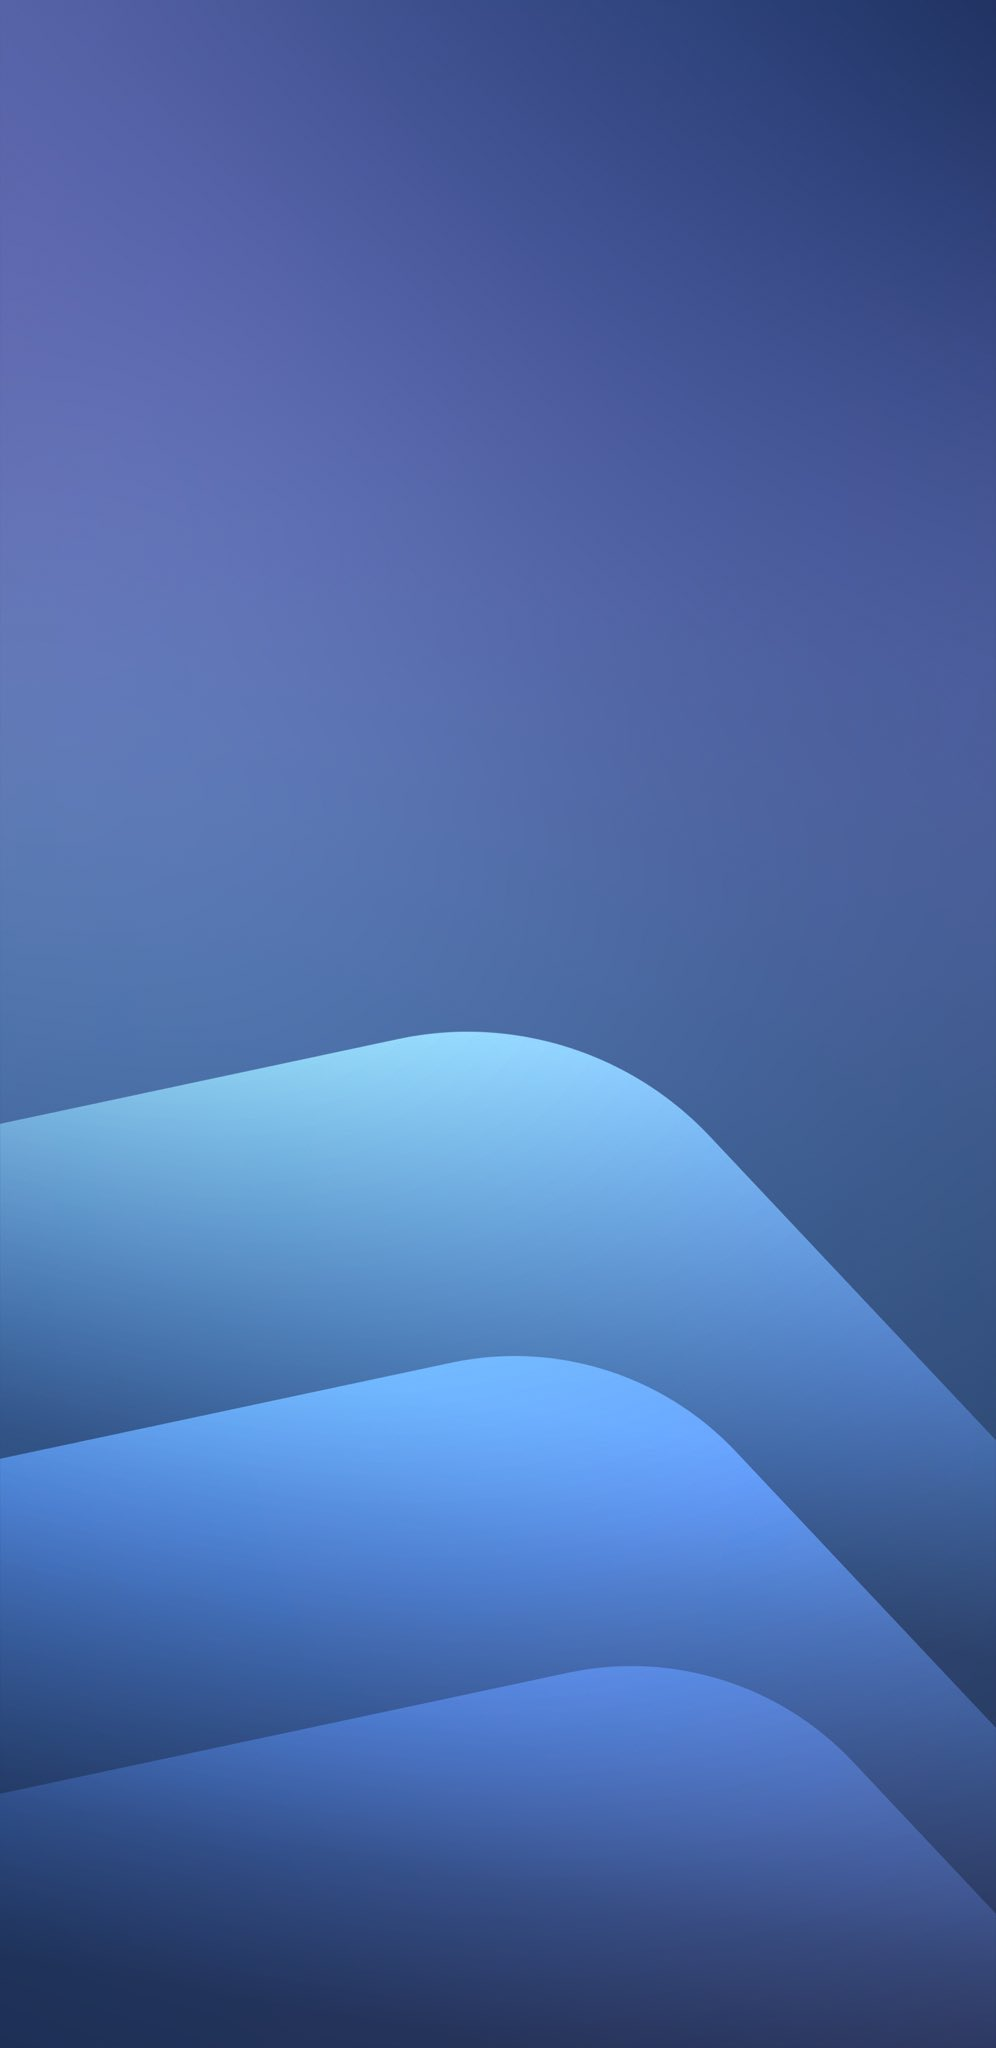 Pacific Blue iphone wallpaper idownloadblog smartechdaily geometric